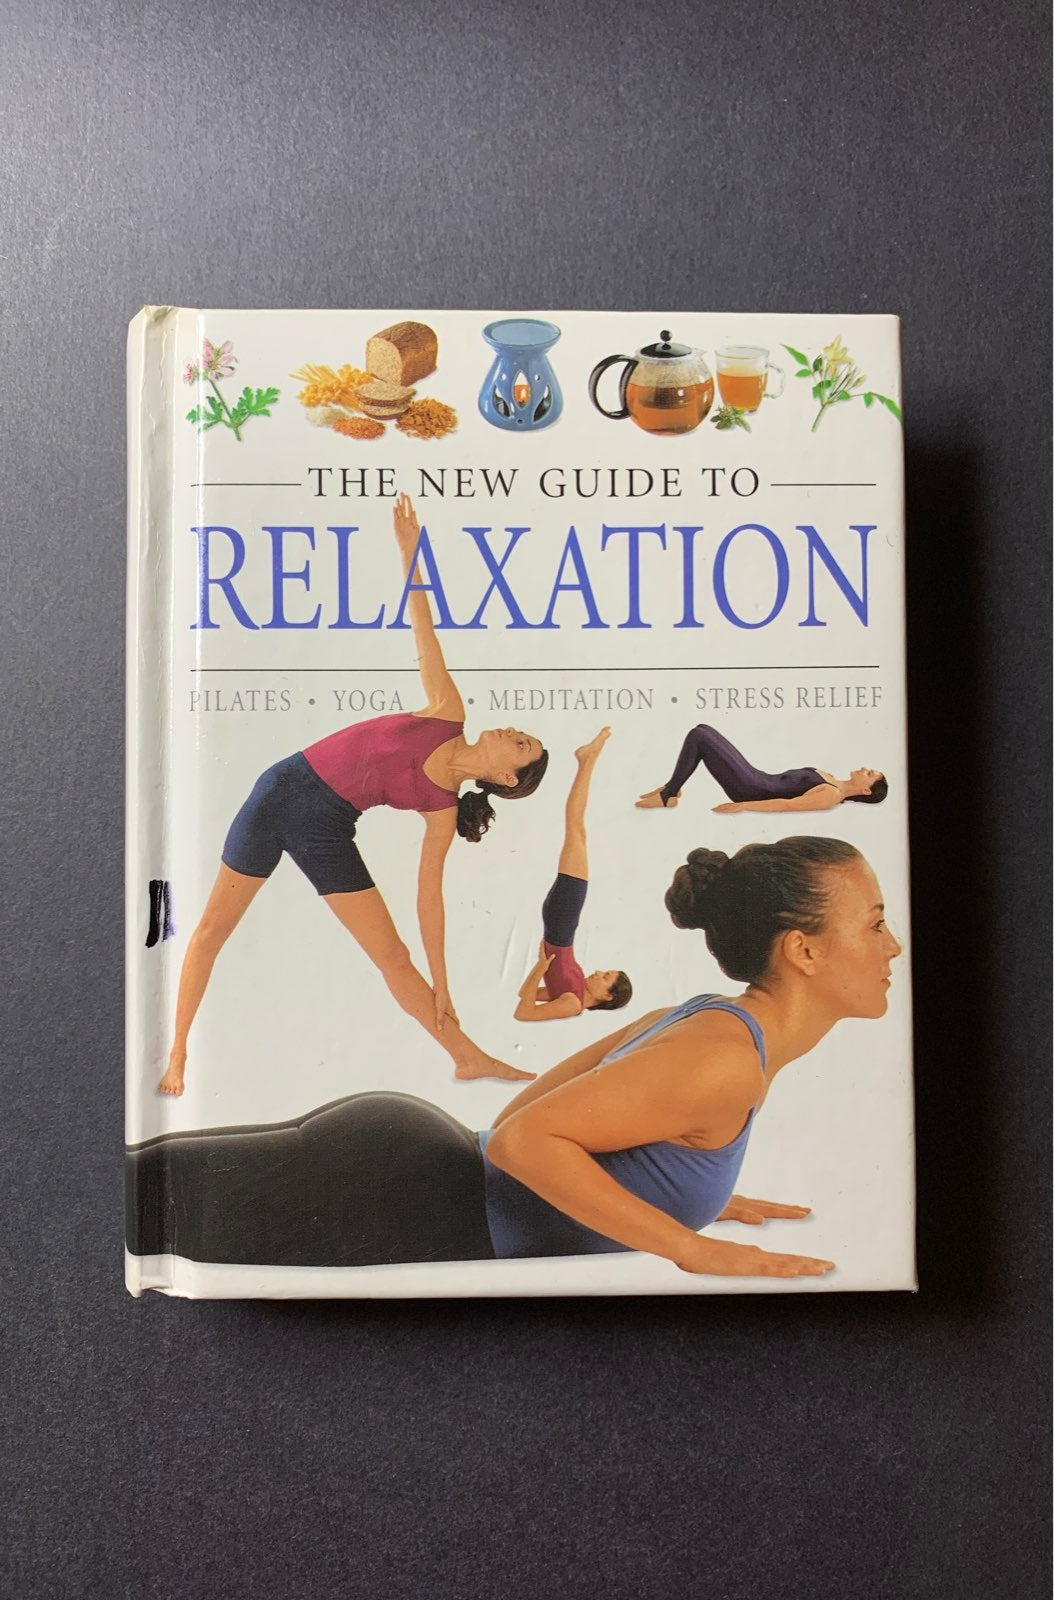 Guide to Relaxation reference book